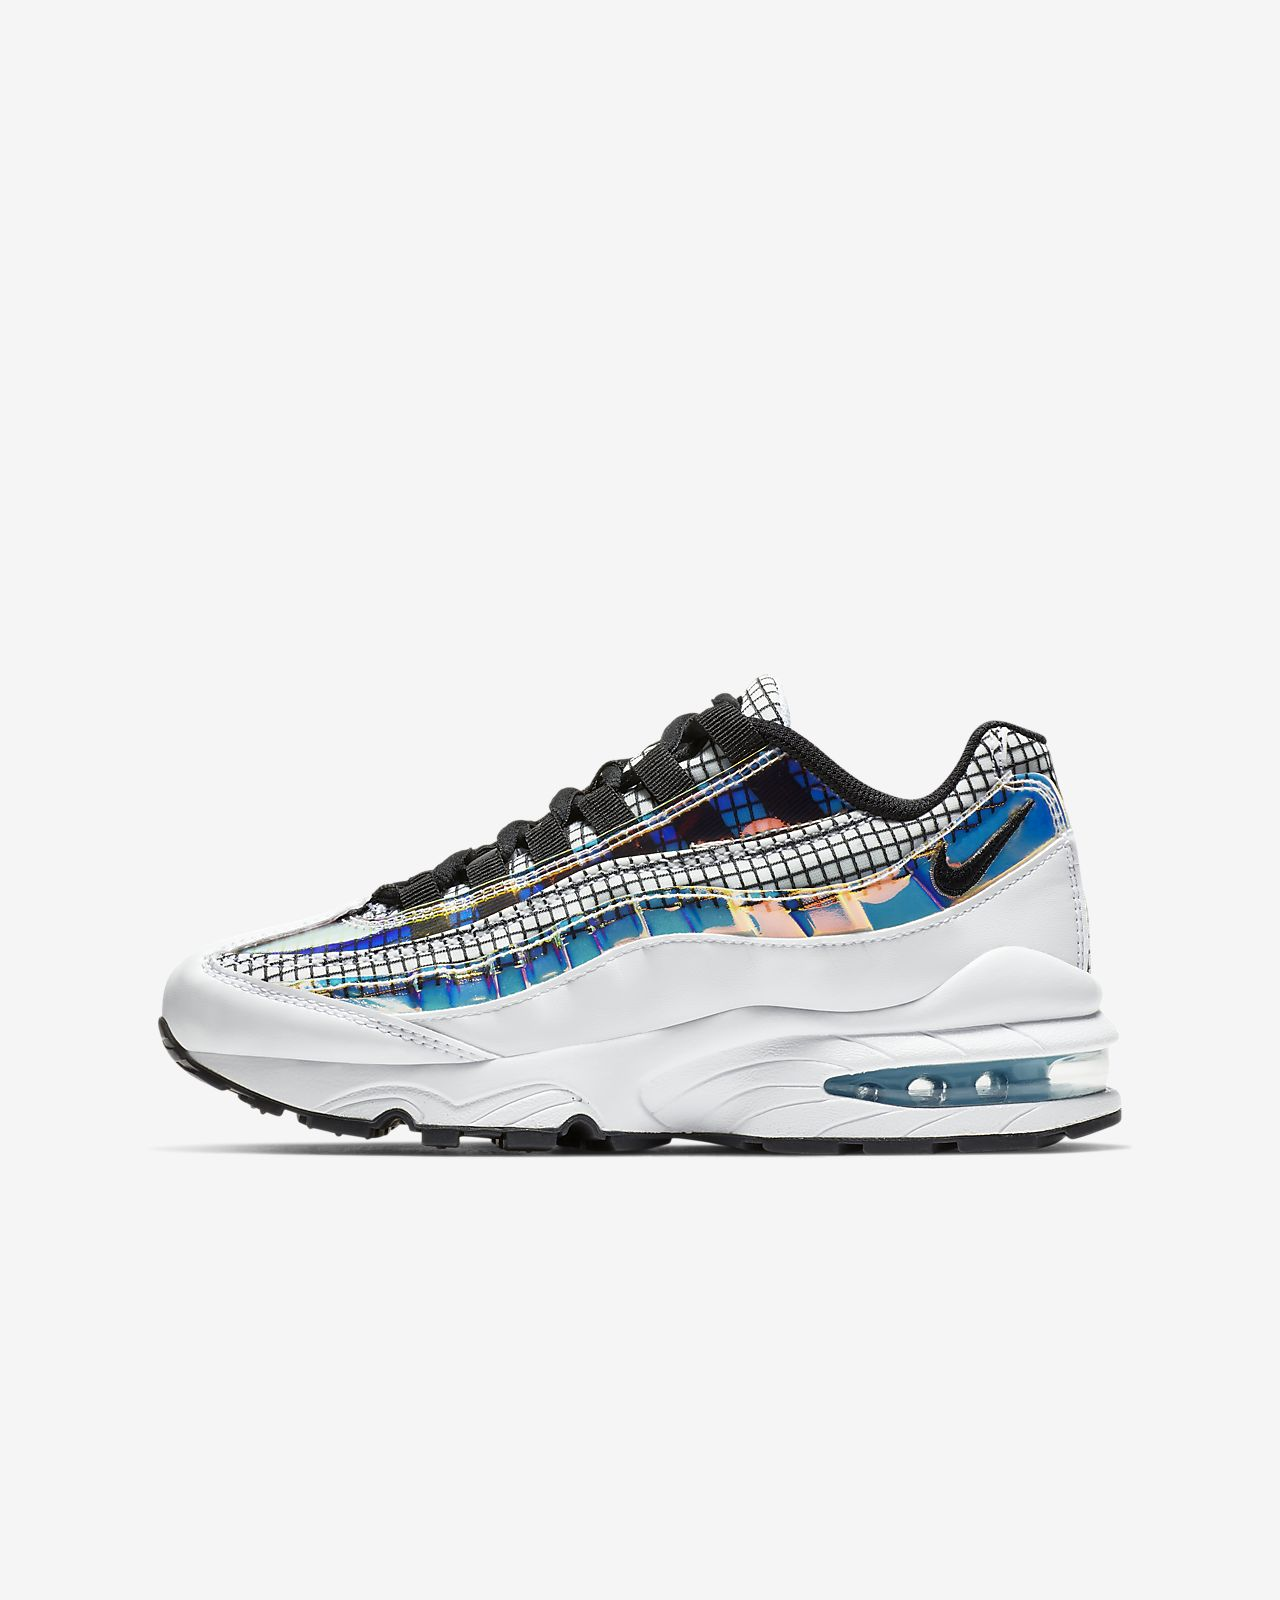 Nike Air Max 95 LV8 Big Kids' Shoe